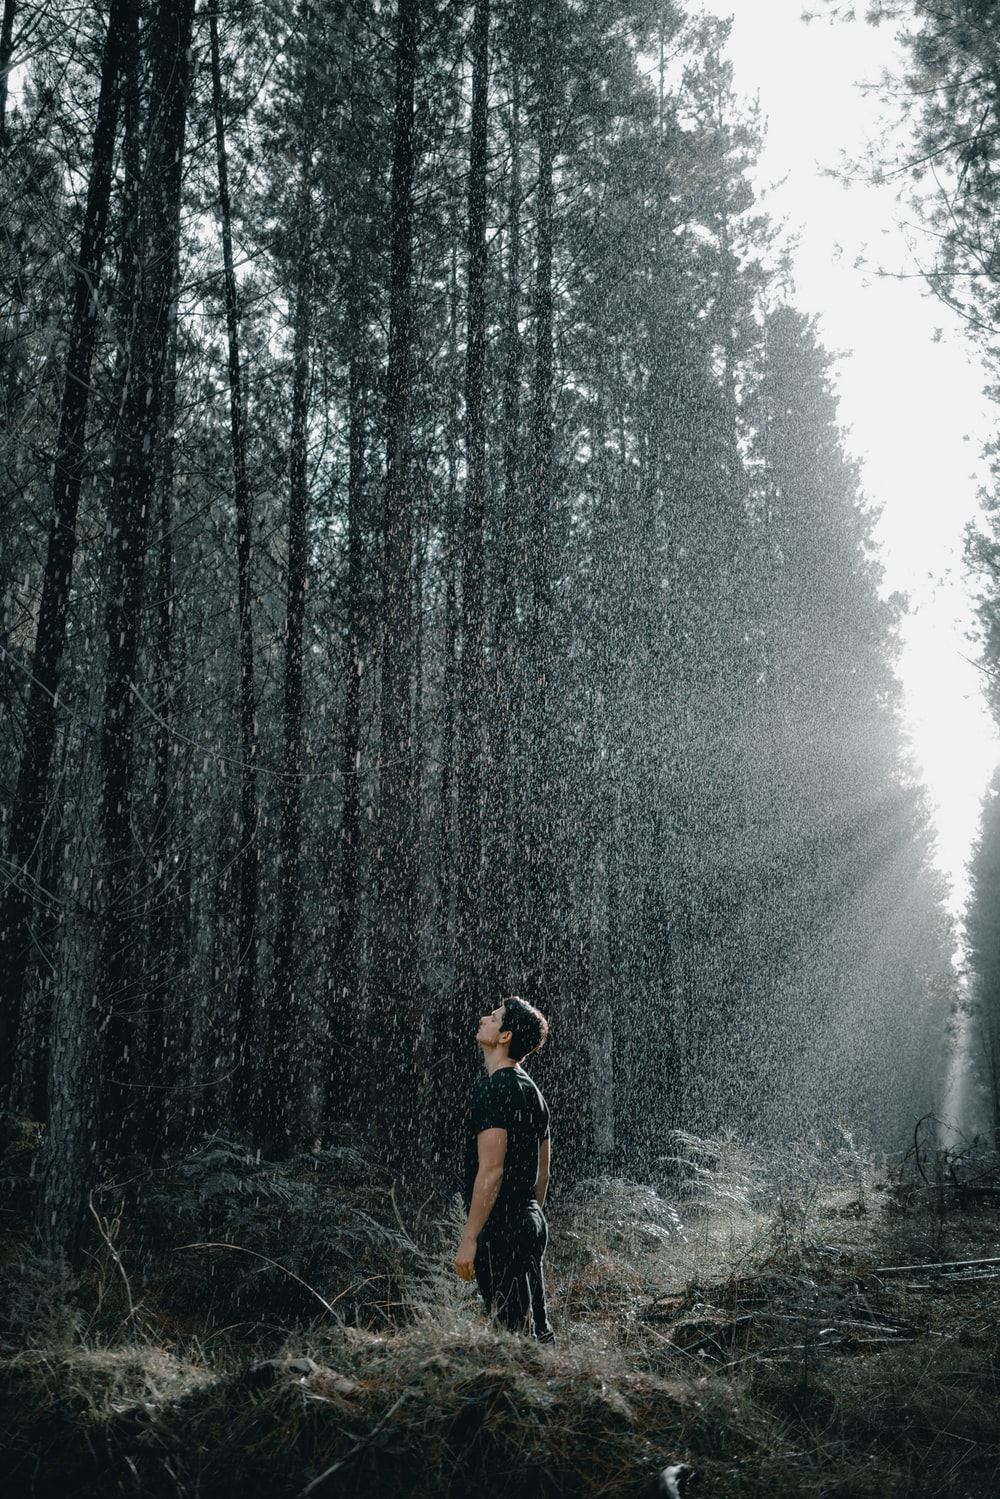 shallow focus photo of man in black T-shirt surrounded by trees during daytime